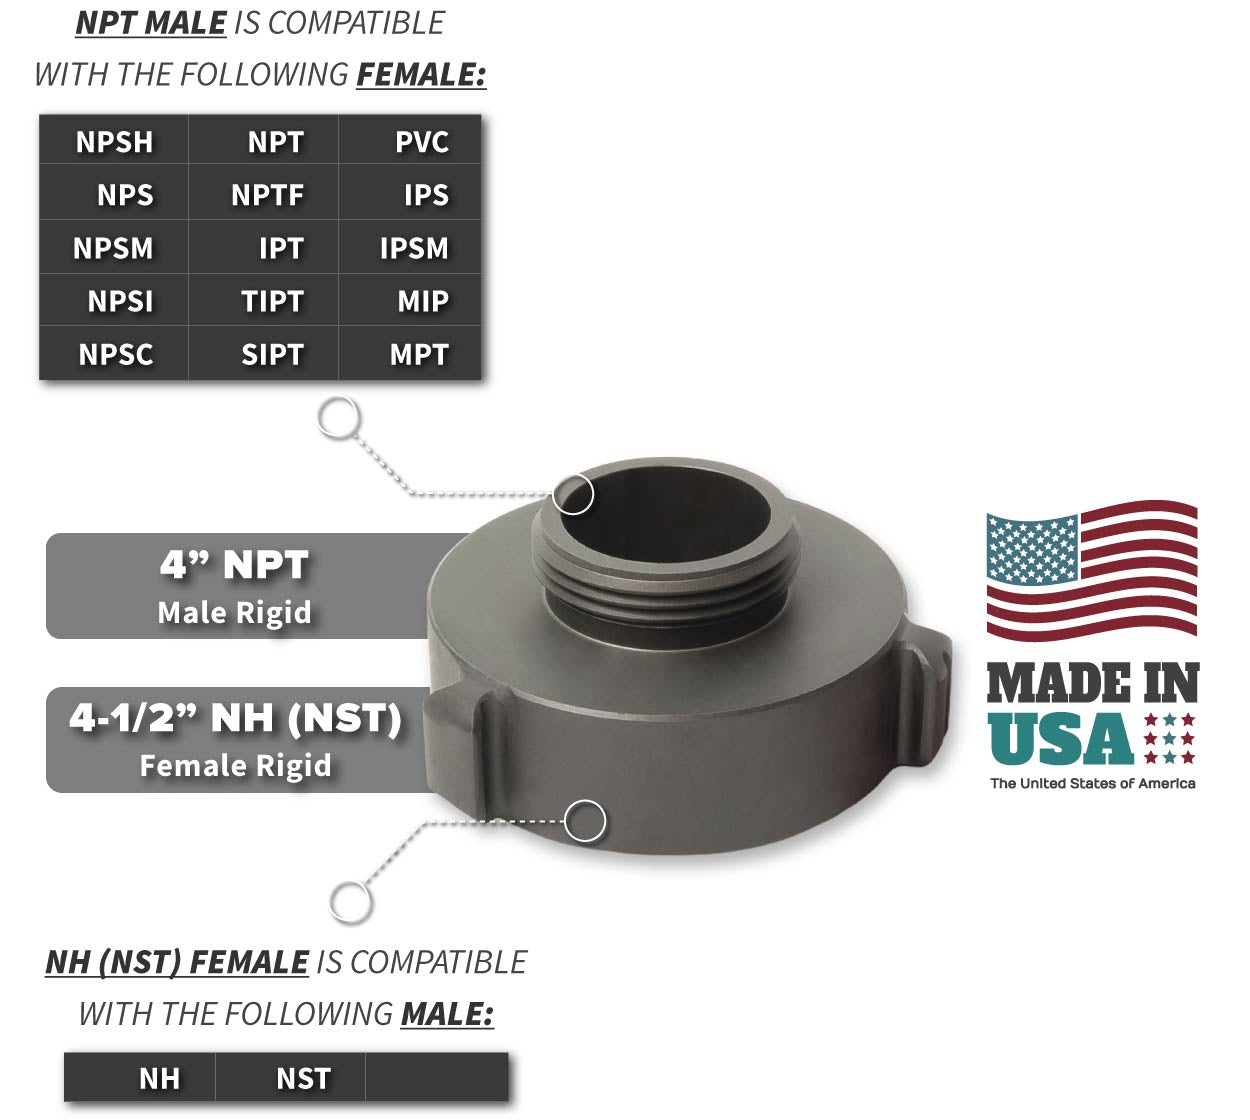 4.5 Inch NH-NST Female x 4 Inch NPT Male Compatibility Thread Chart